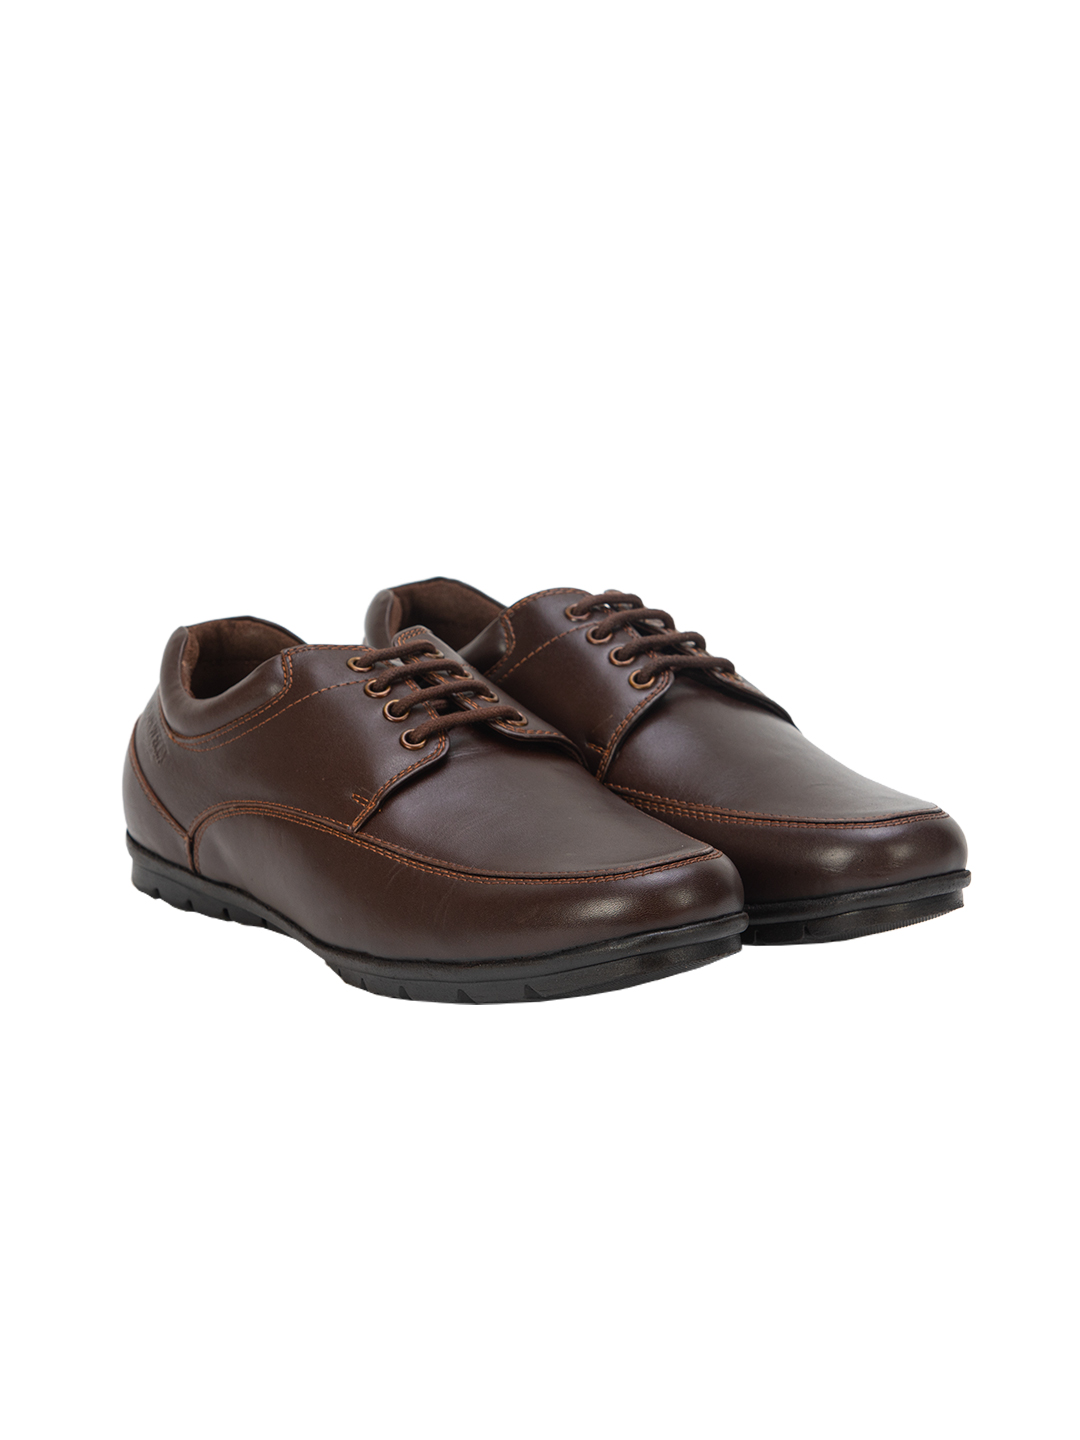 Buy Von Wellx Germany Comfort Coffee Brayden Shoes Online in Agra